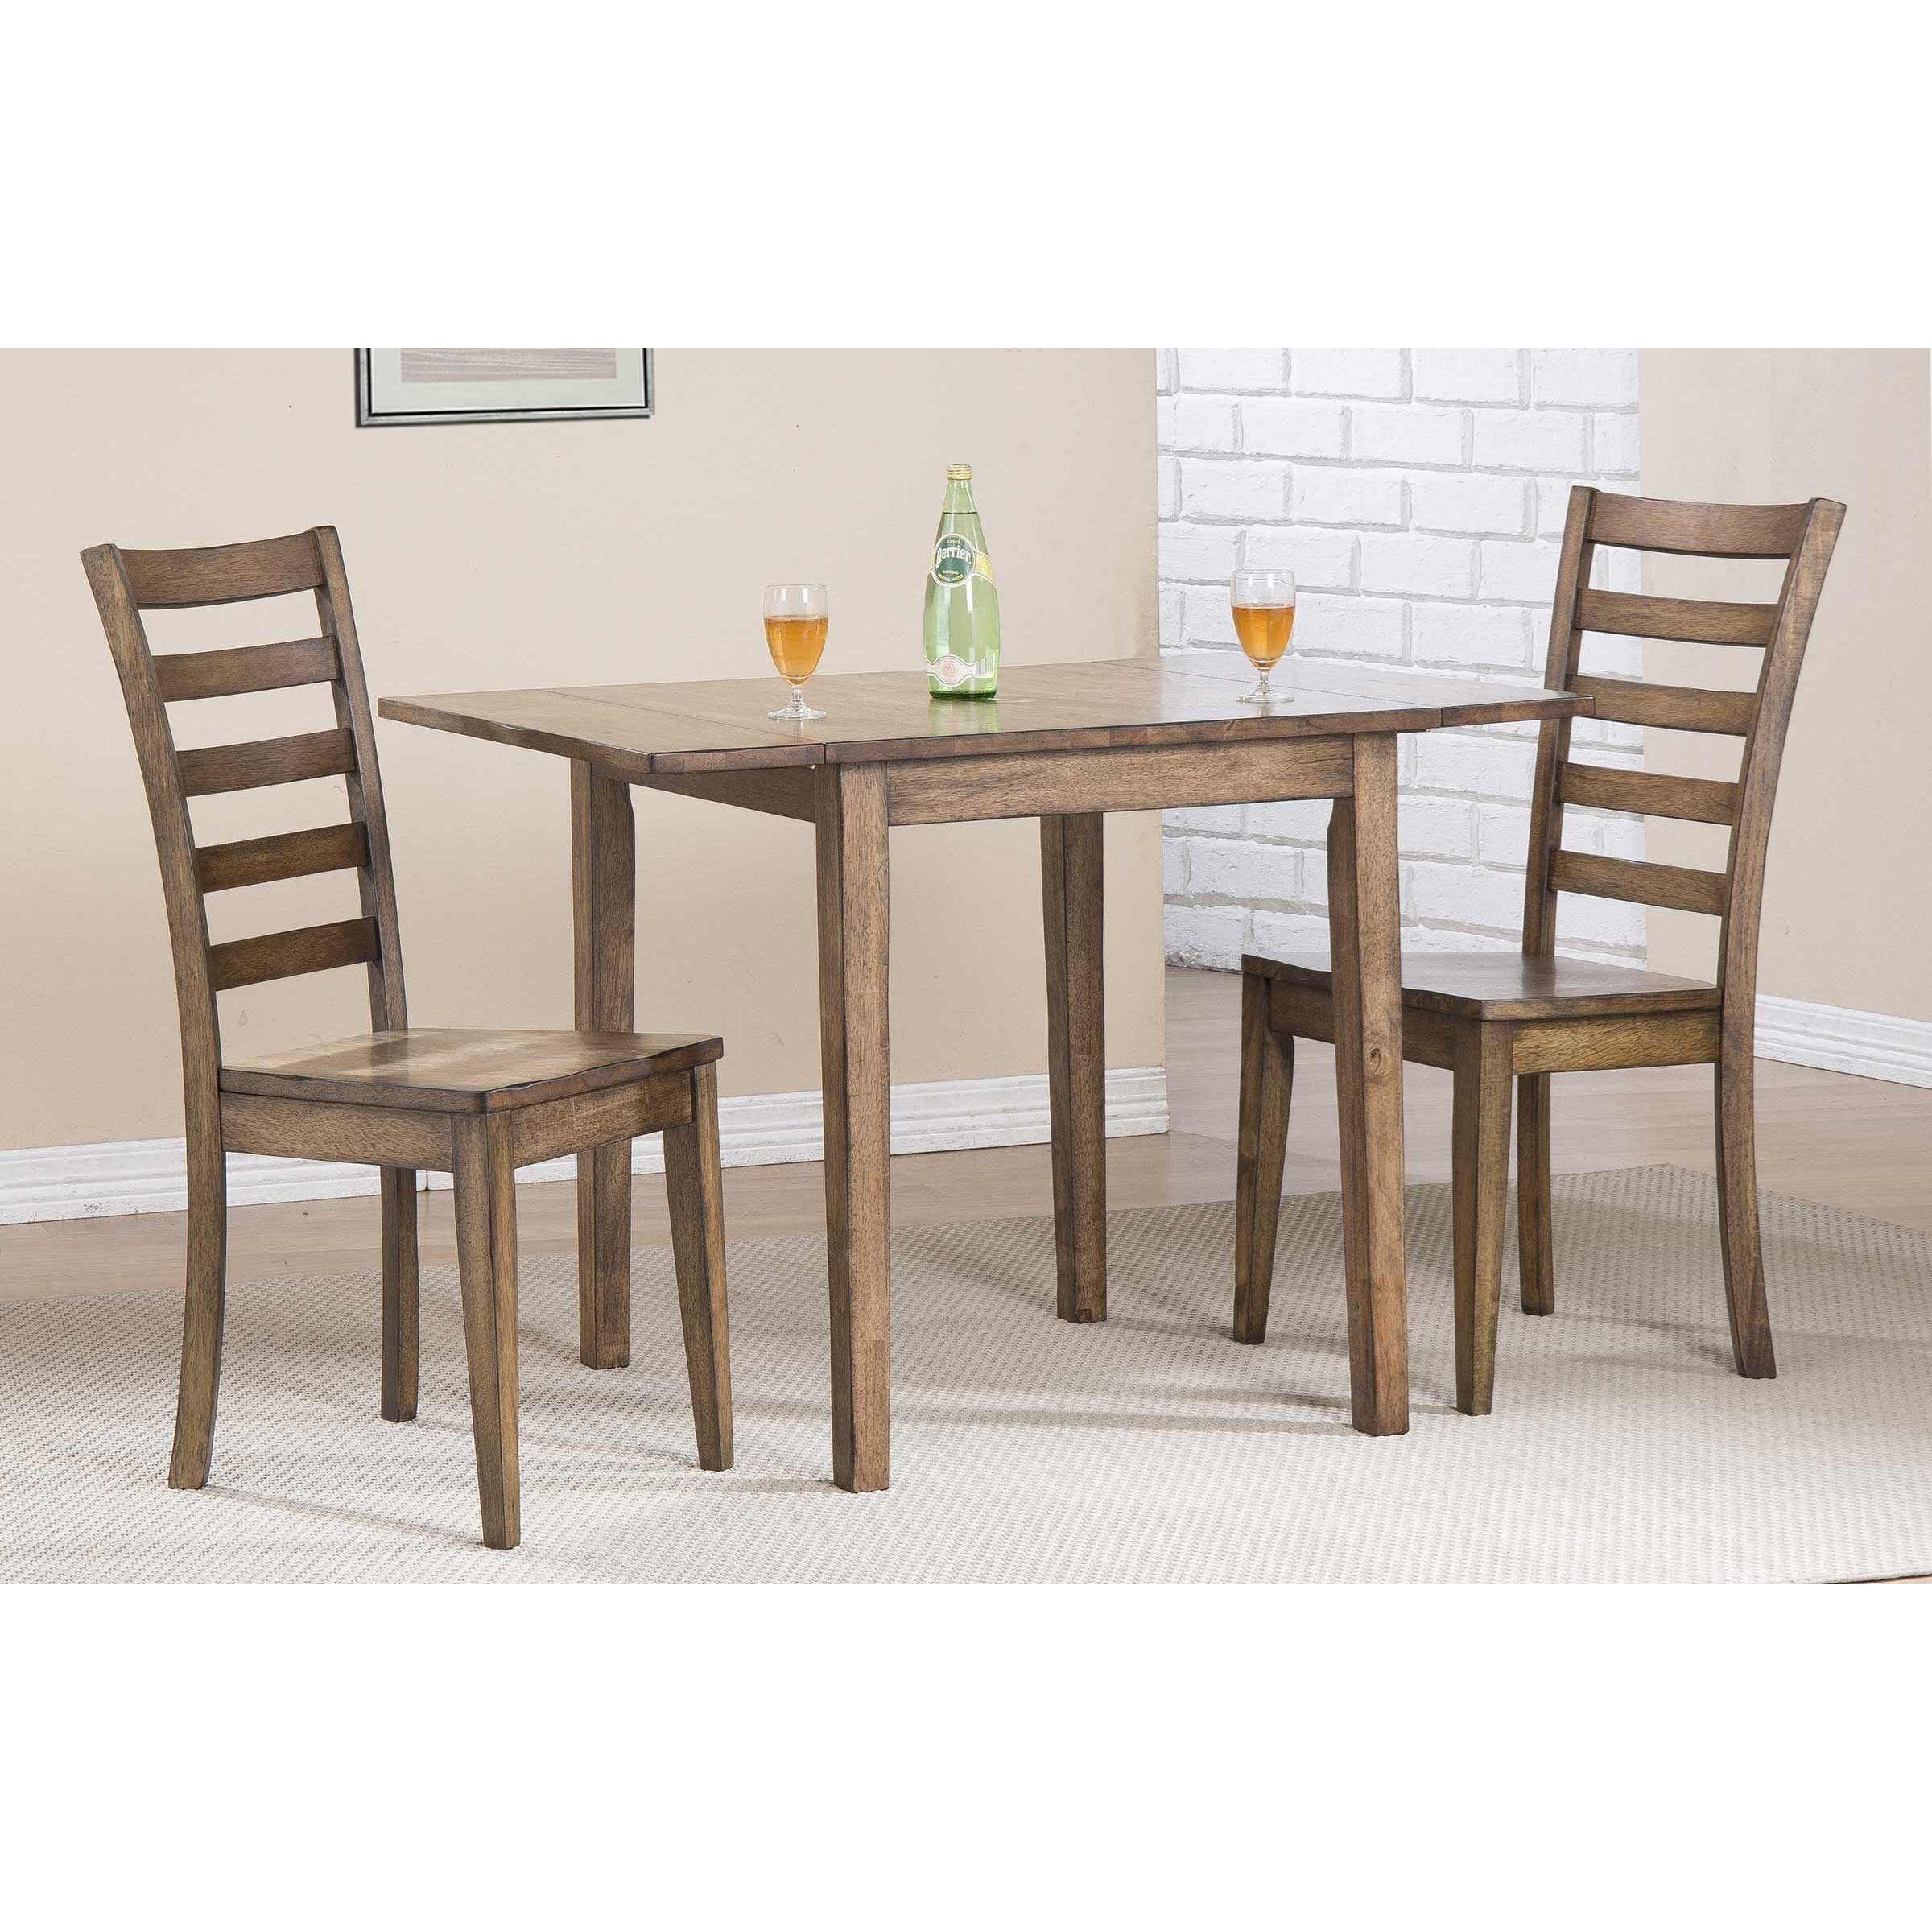 Carmel Dining Set With Ladderback Chairs And Butterfly Leaf By Winners Only